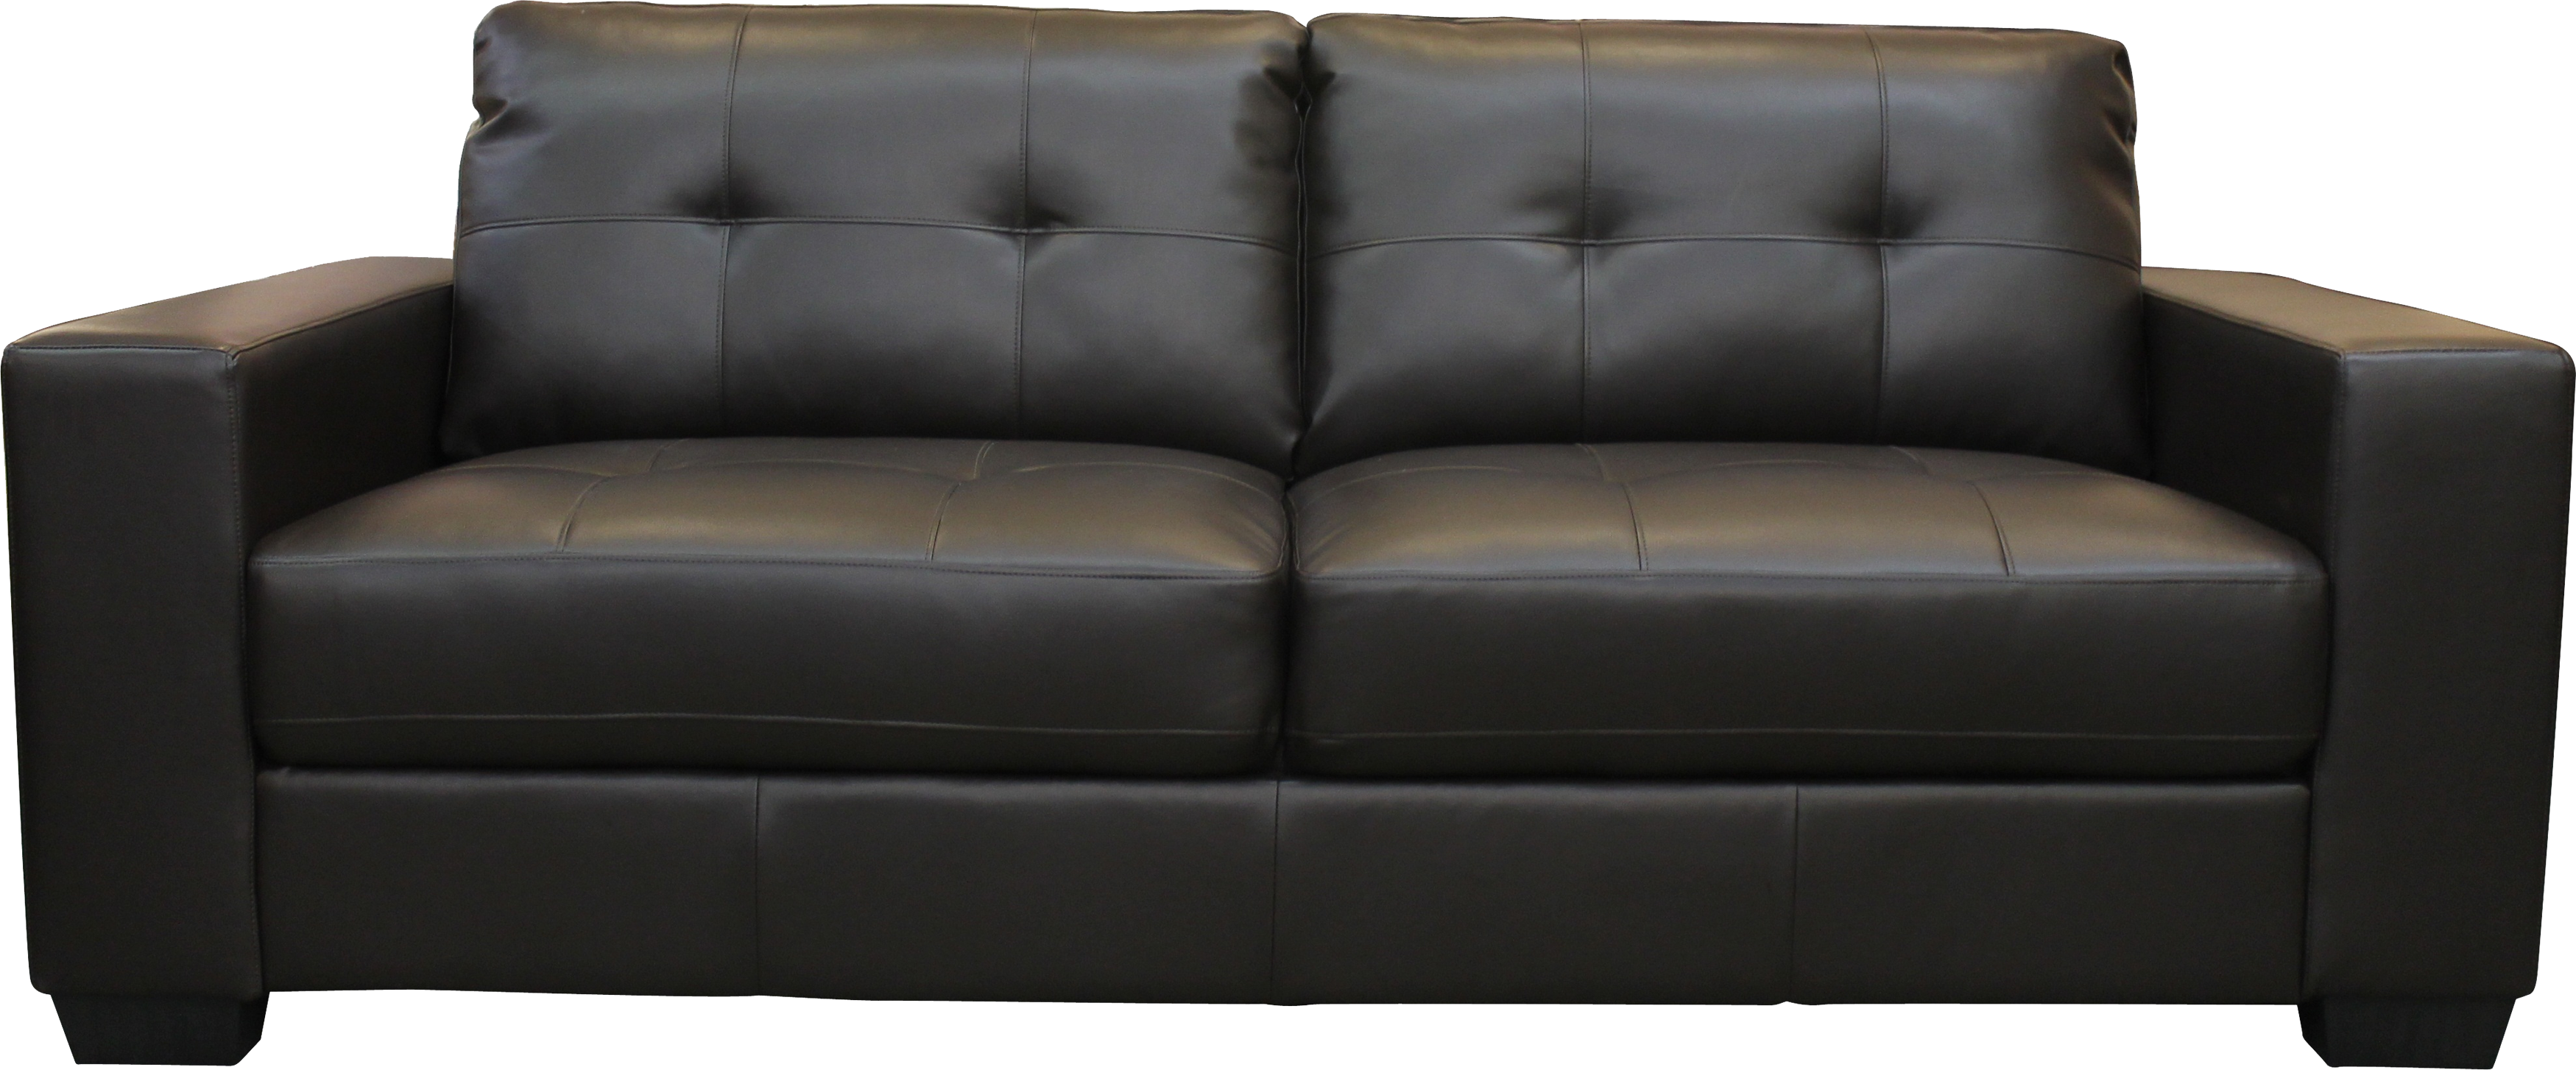 Sofa PNG images.